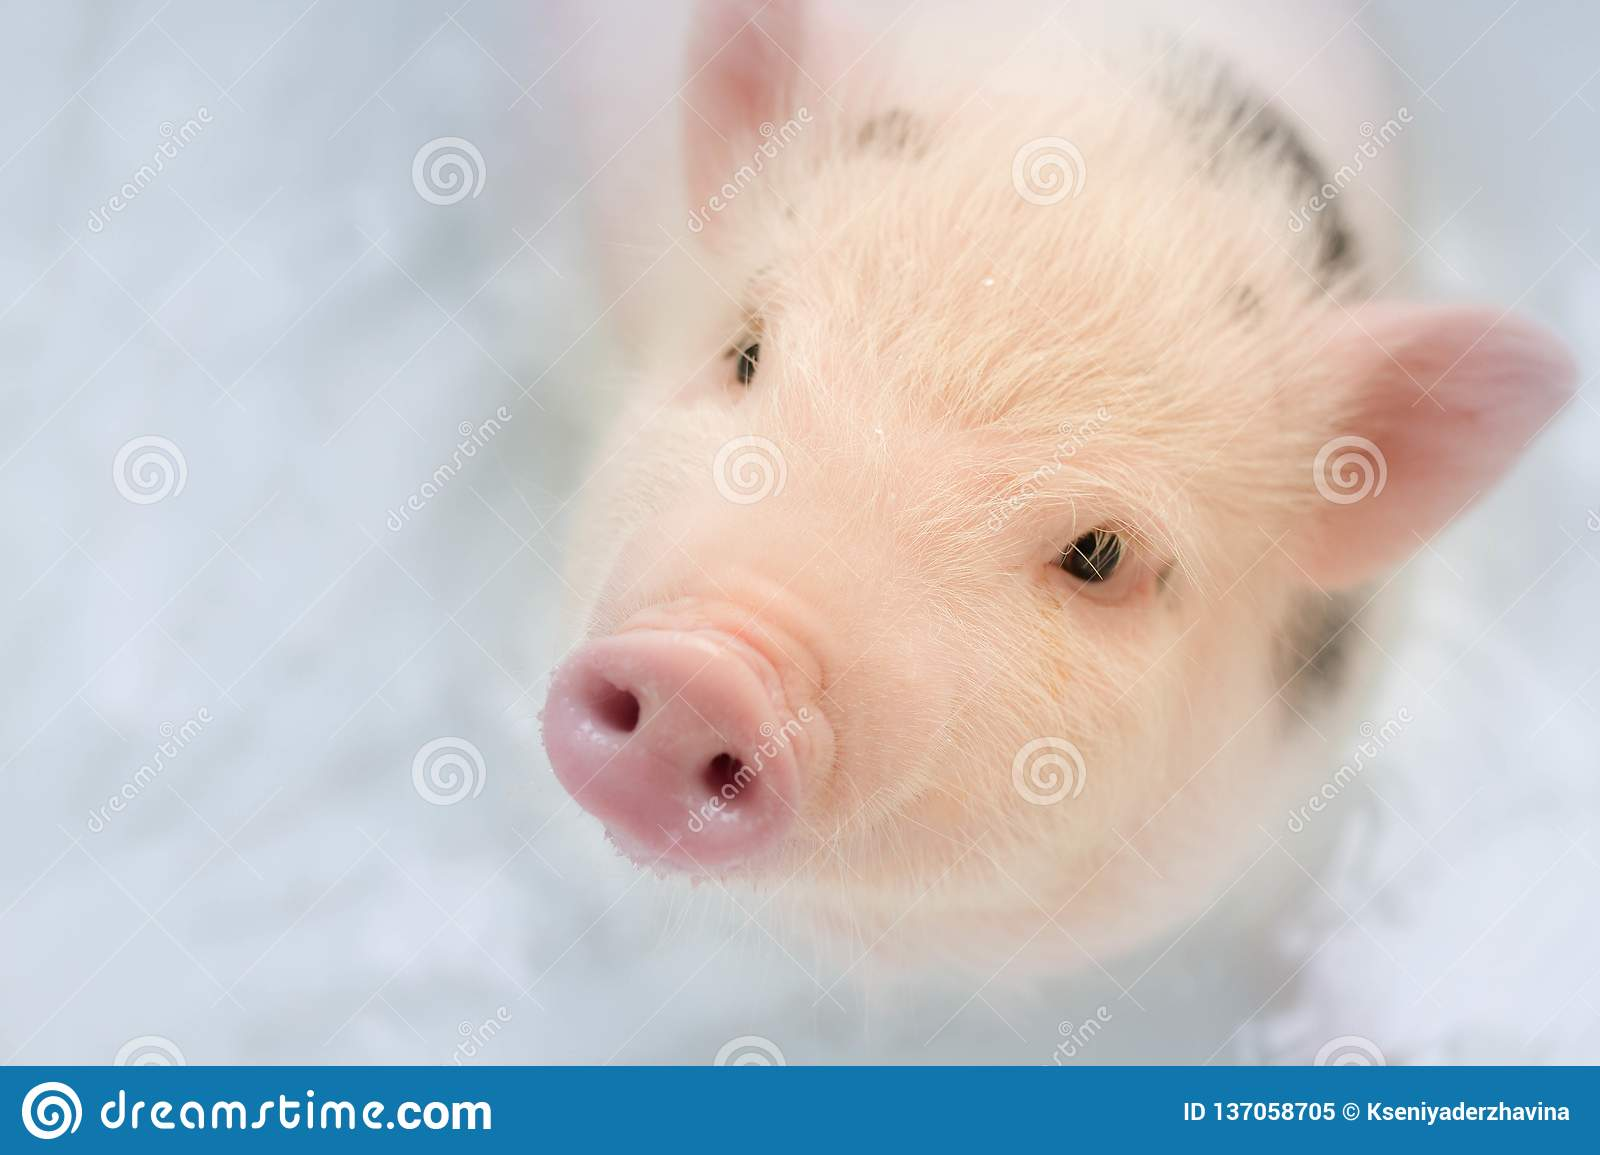 Lovely pig looks up standing in blue water in a snow-white bath